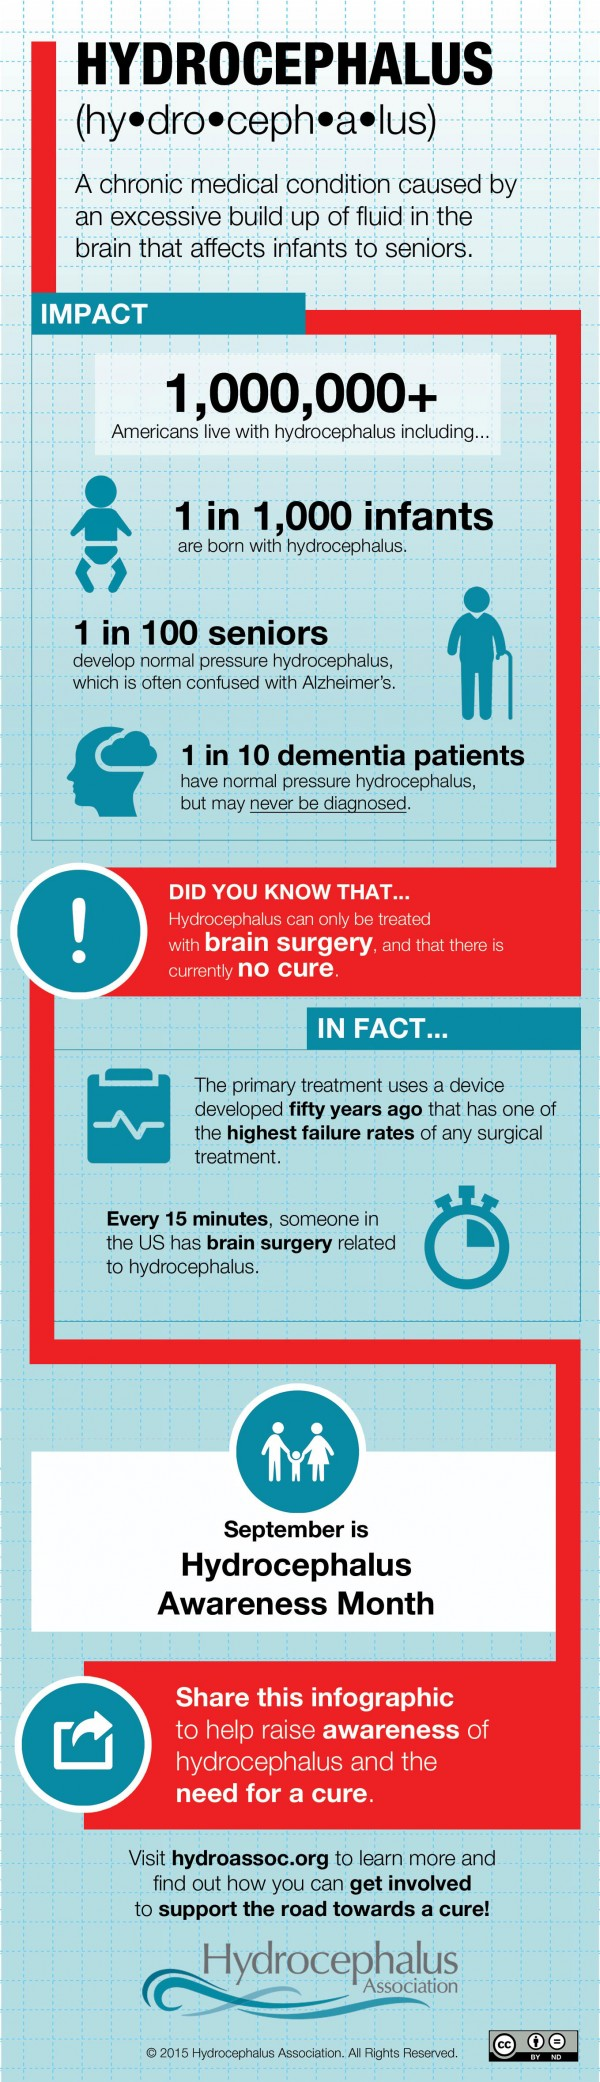 hydrocephalus_awareness_infographic_FINAL